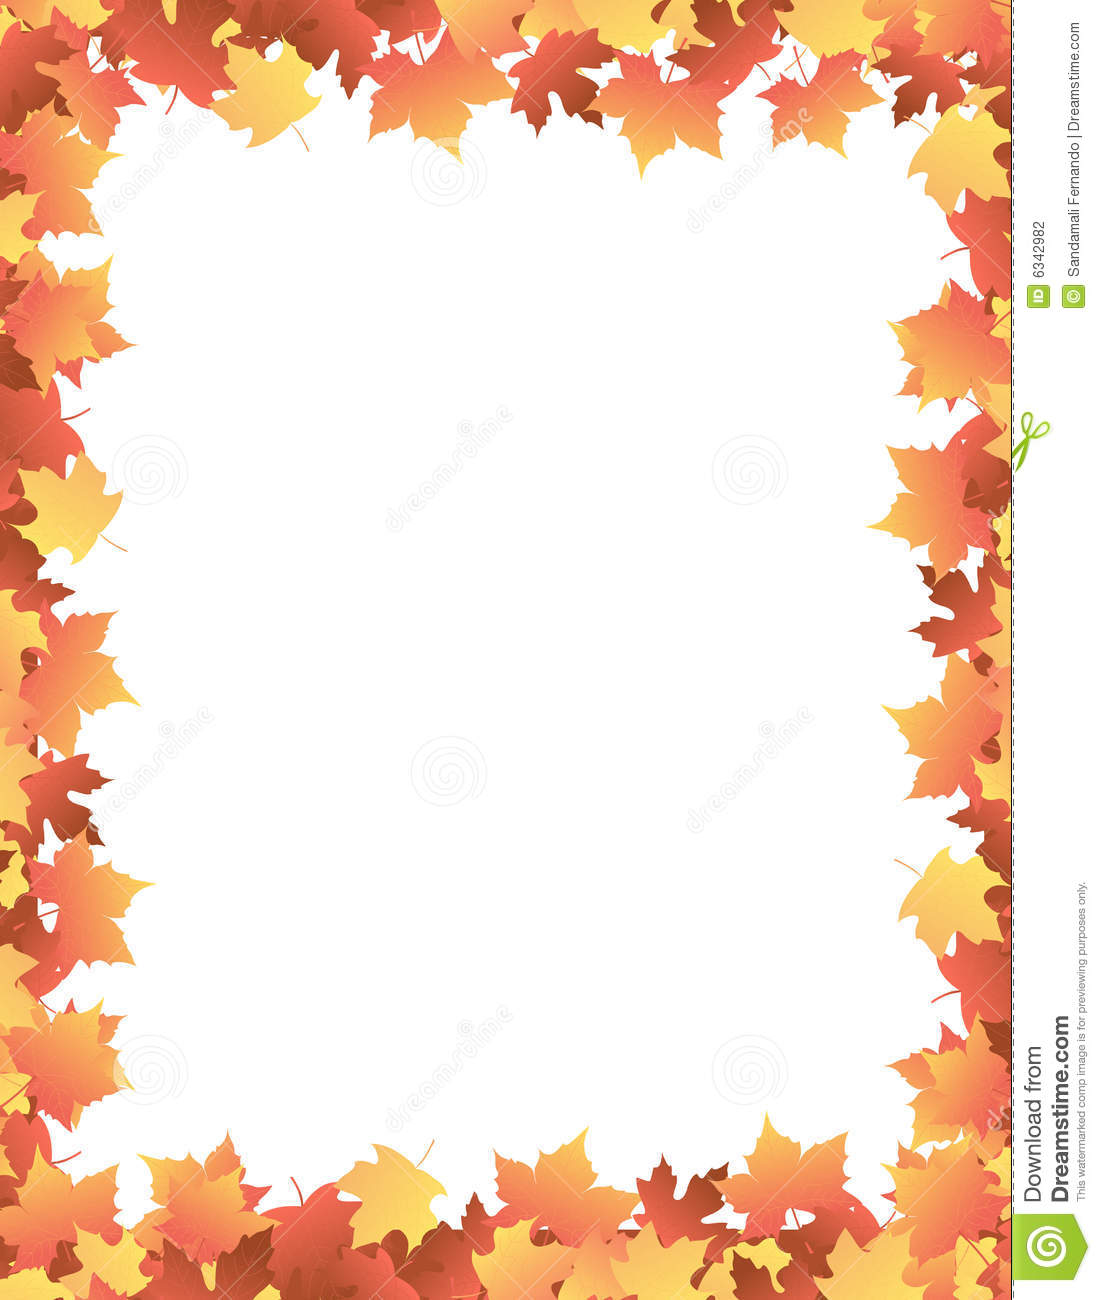 Fall Leaves Clip Art Border Recipe 101-Fall Leaves Clip Art Border Recipe 101-4